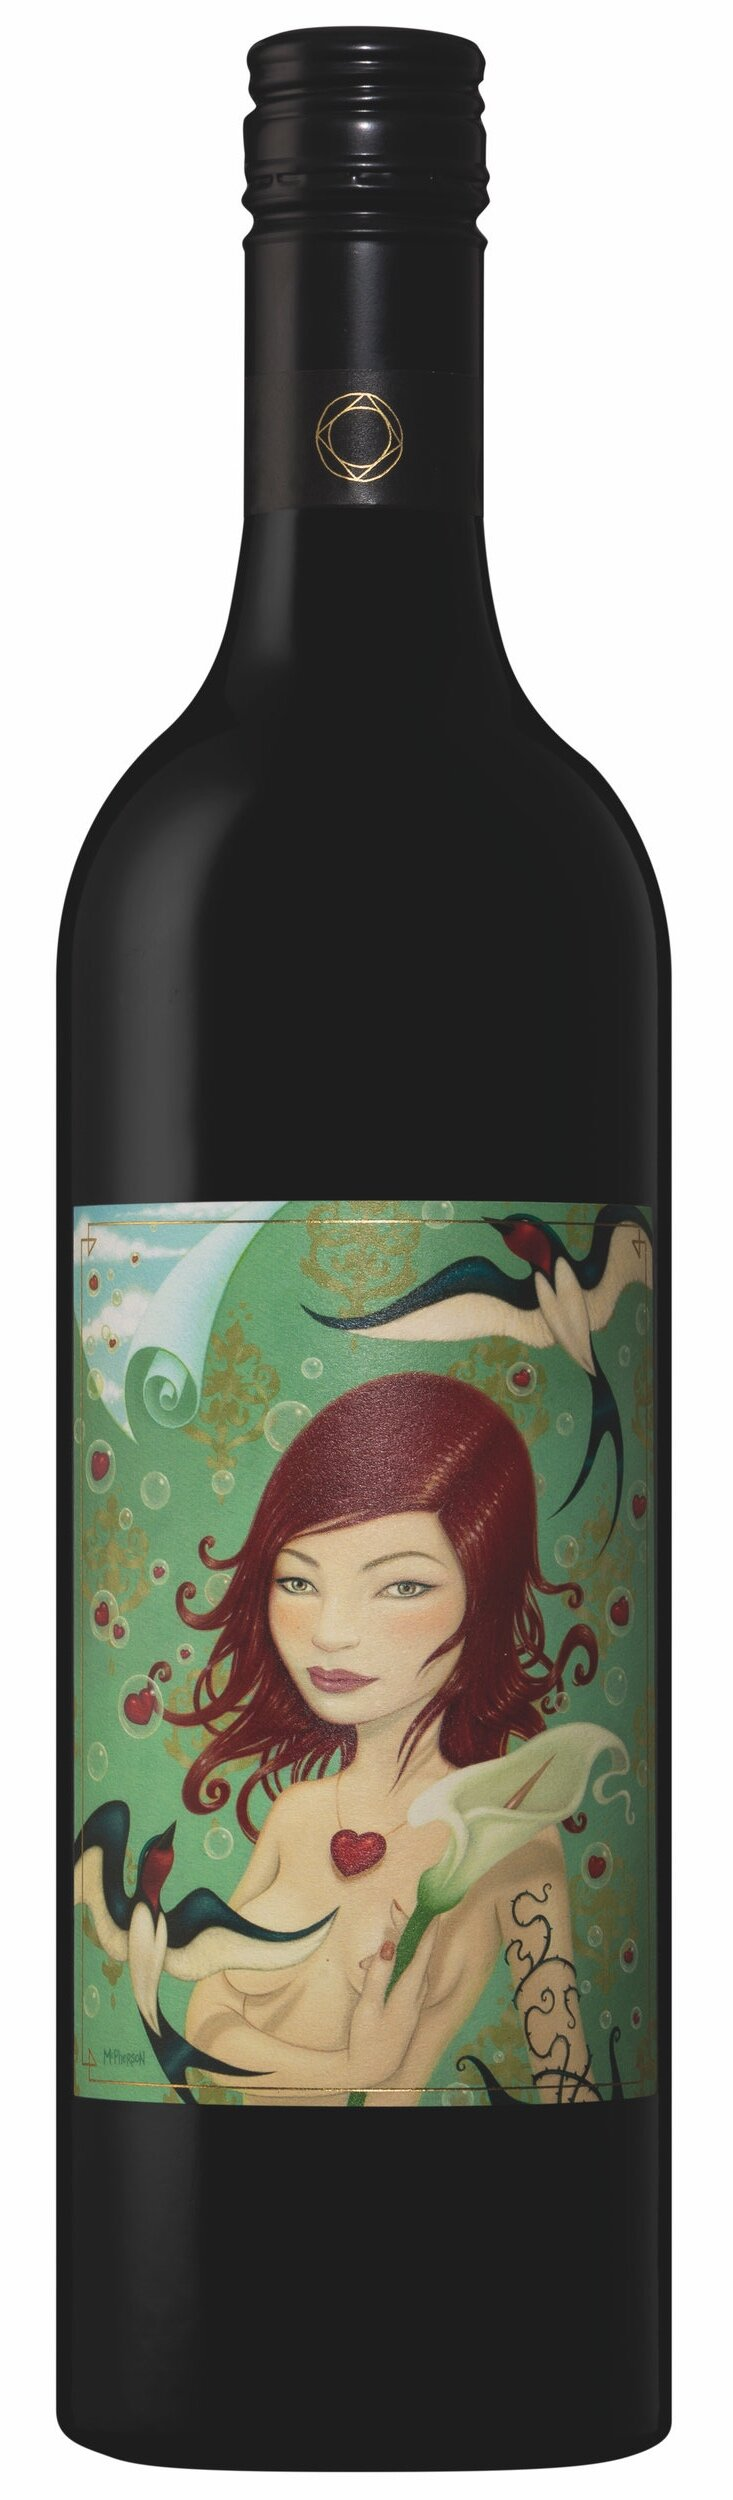 Adelina Grenache     アデリーナ・グルナッシュ   原産地: クレアヴァレー  希望小売価格: ¥5800  James Suckling 96 Points (Ranked Australia's Top Grenache in 2018)  A wine with terrific elegance and focus. This 2017 vintage grenache has considerable power and purity. A thrilling wine to taste. The style of restrained fruit and clearly expressed tannins continues in this vintage. The succulent red fruits hold long, fresh and unwavering. Best from 2022.  オーストラリアワインランキング2052本中第41位。   素晴らしい優雅さを持ち、味に集中力があります。 この2017年ヴィンテージのグレナッシュにはかなりの力強さとピュアさがあり、味わうのがワクワクするようなワインです。 整った印象のフルーツ、明確に表現されたタンニンのスタイルは、このヴィンテージにも現れています。 ジューシーな赤い果実のニュアンスは長く続き、フレッシュで率直です。  A 2 acre block of 80 year old vines planted on a grey sandy loam.  WINEMAKING: hand-picked, fruit is detemmed and mildly crushed, fermentation and maceration occurs over 50 days and the wine is pressed to large format french oak for malo and maturation (10 months). 2,052 bottles produced.